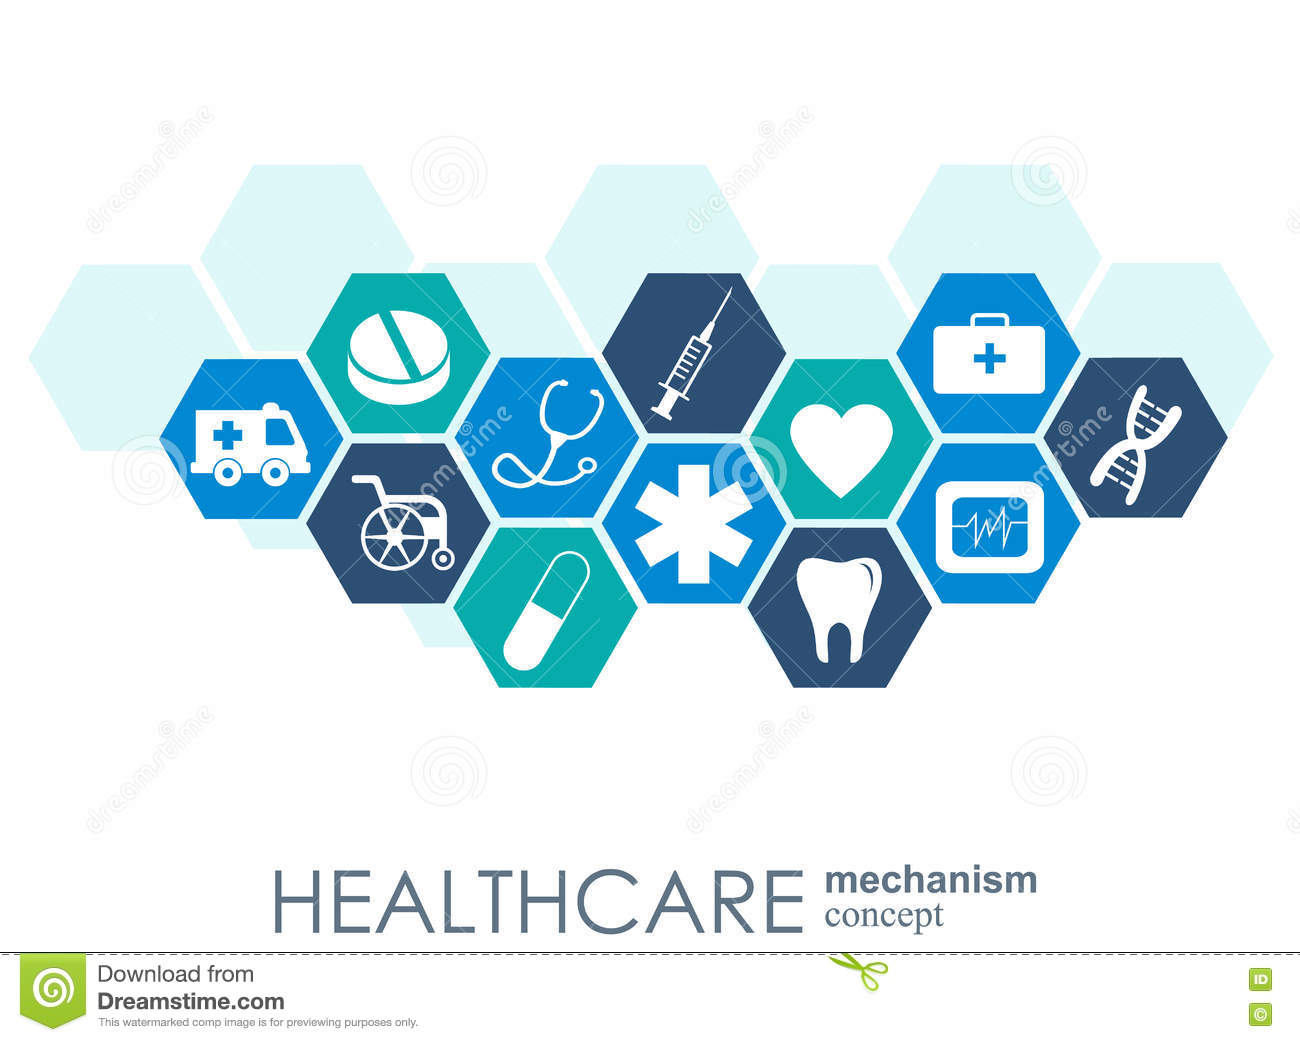 healthcare-mechanism-concept-abstract-background-connected-gears-icons-medical-health-strategy-care-medicine-network-78943597.jpg